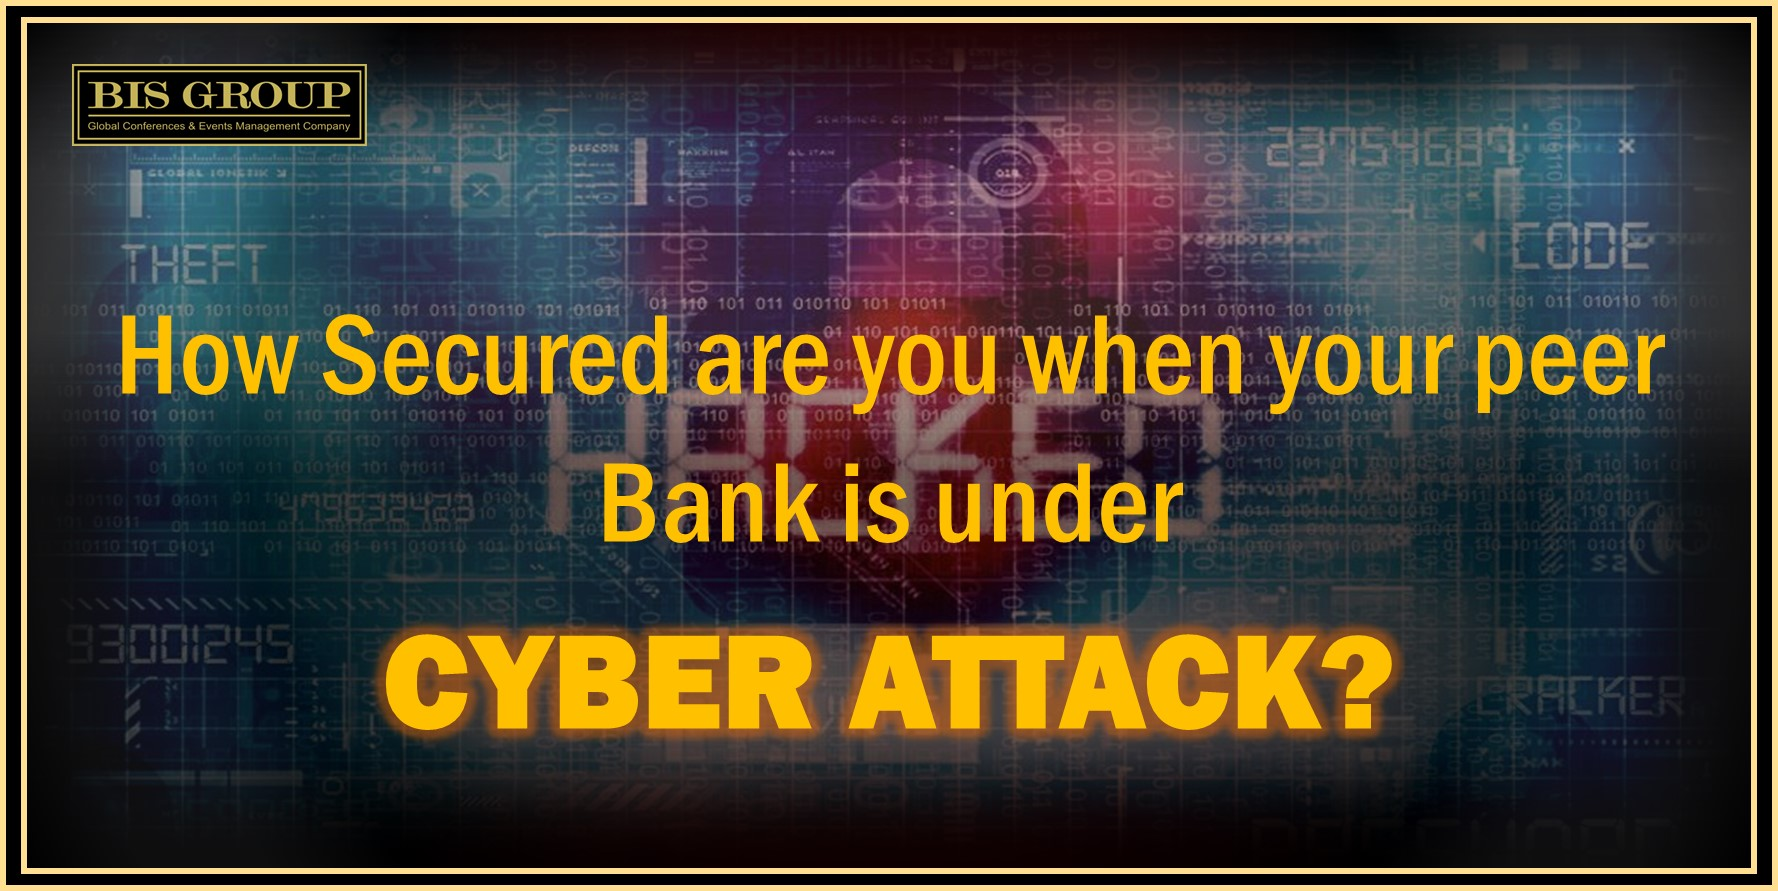 How secured are you when your peer Bank is under a Cyber Attack?